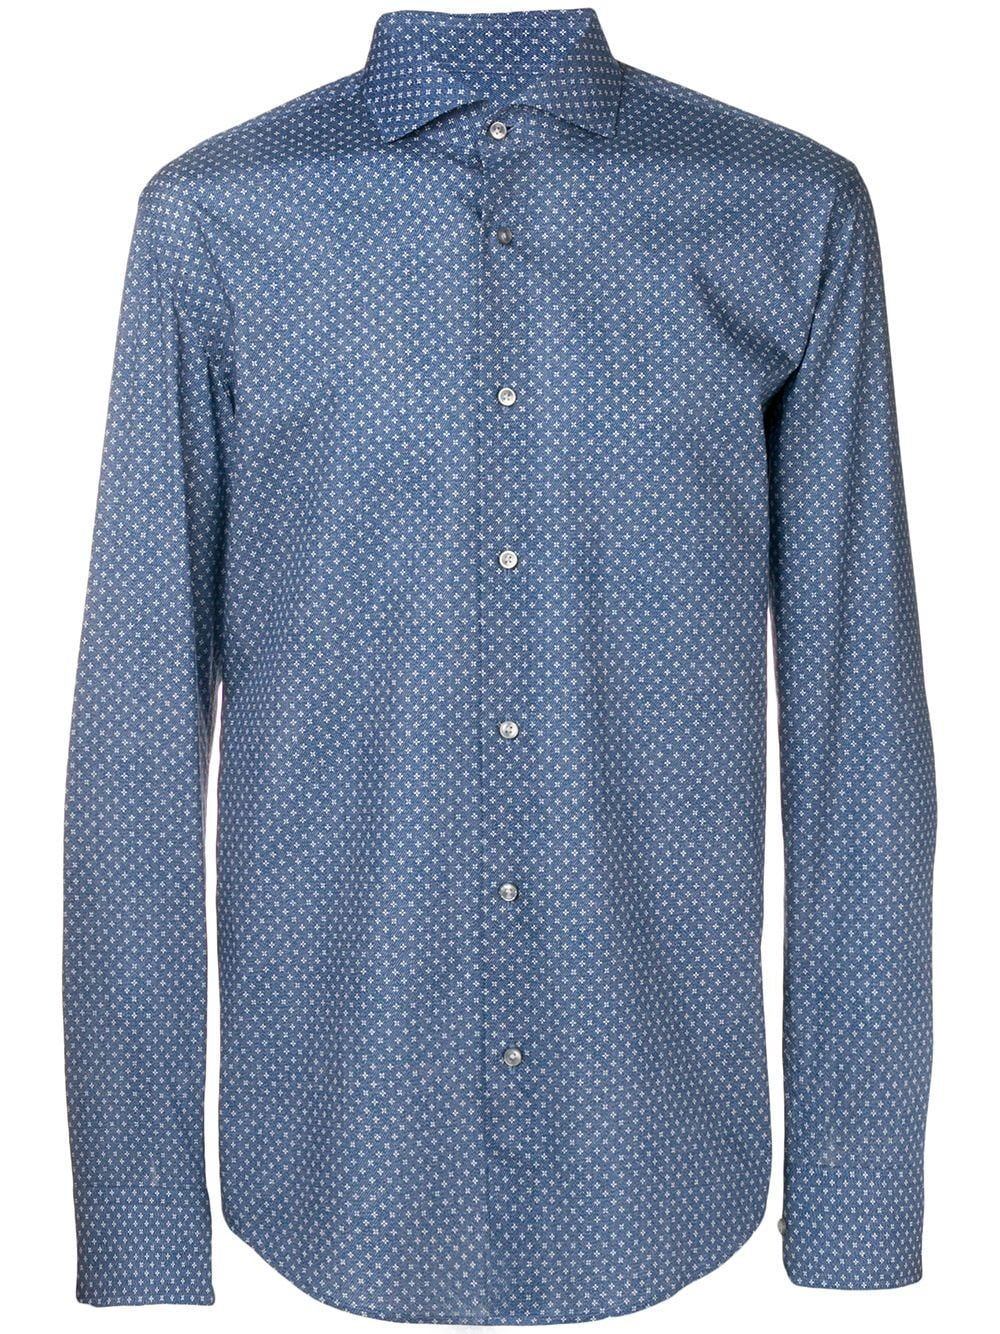 be156663 BOSS HUGO BOSS BOSS HUGO BOSS PRINTED SHIRT - BLUE. #bosshugoboss #cloth